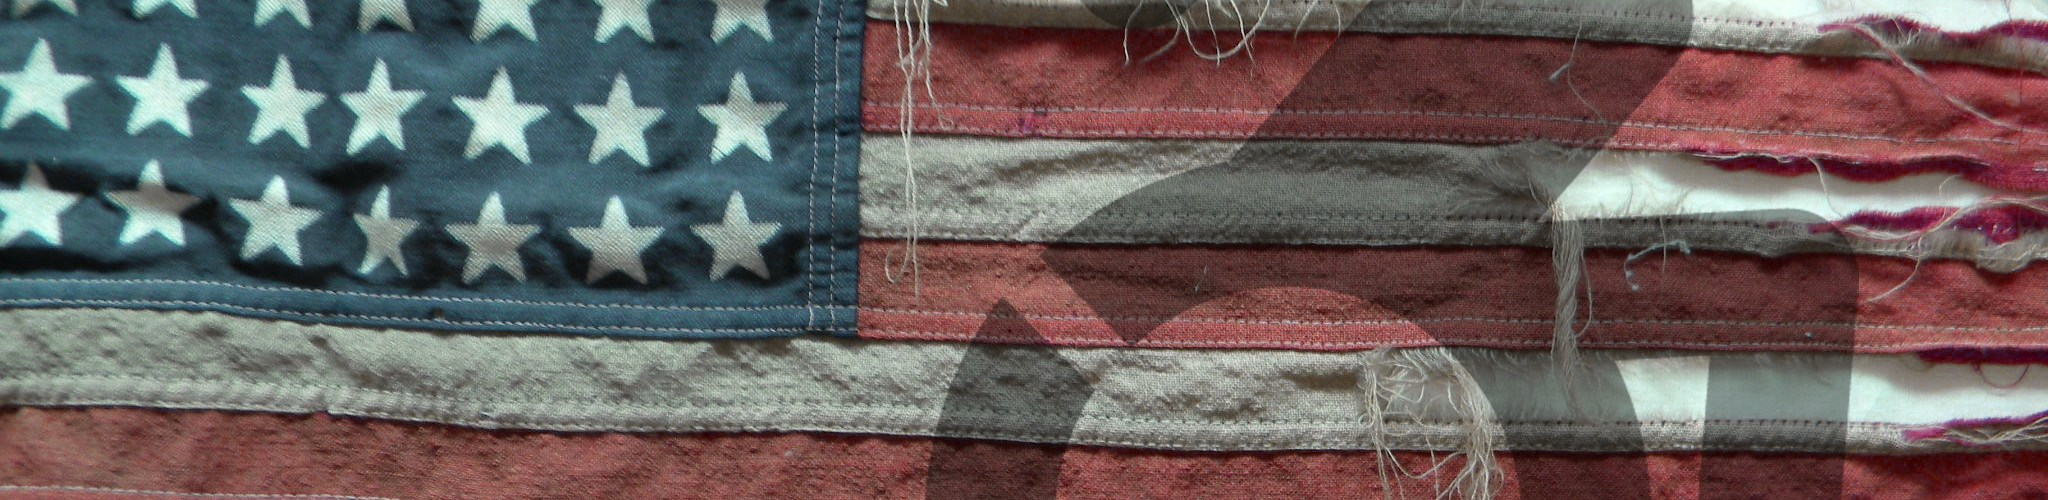 Tattered American Flag with wheelchair symbol. Priotesting Donald Trump because he promotes discrimination against people with disabilities.